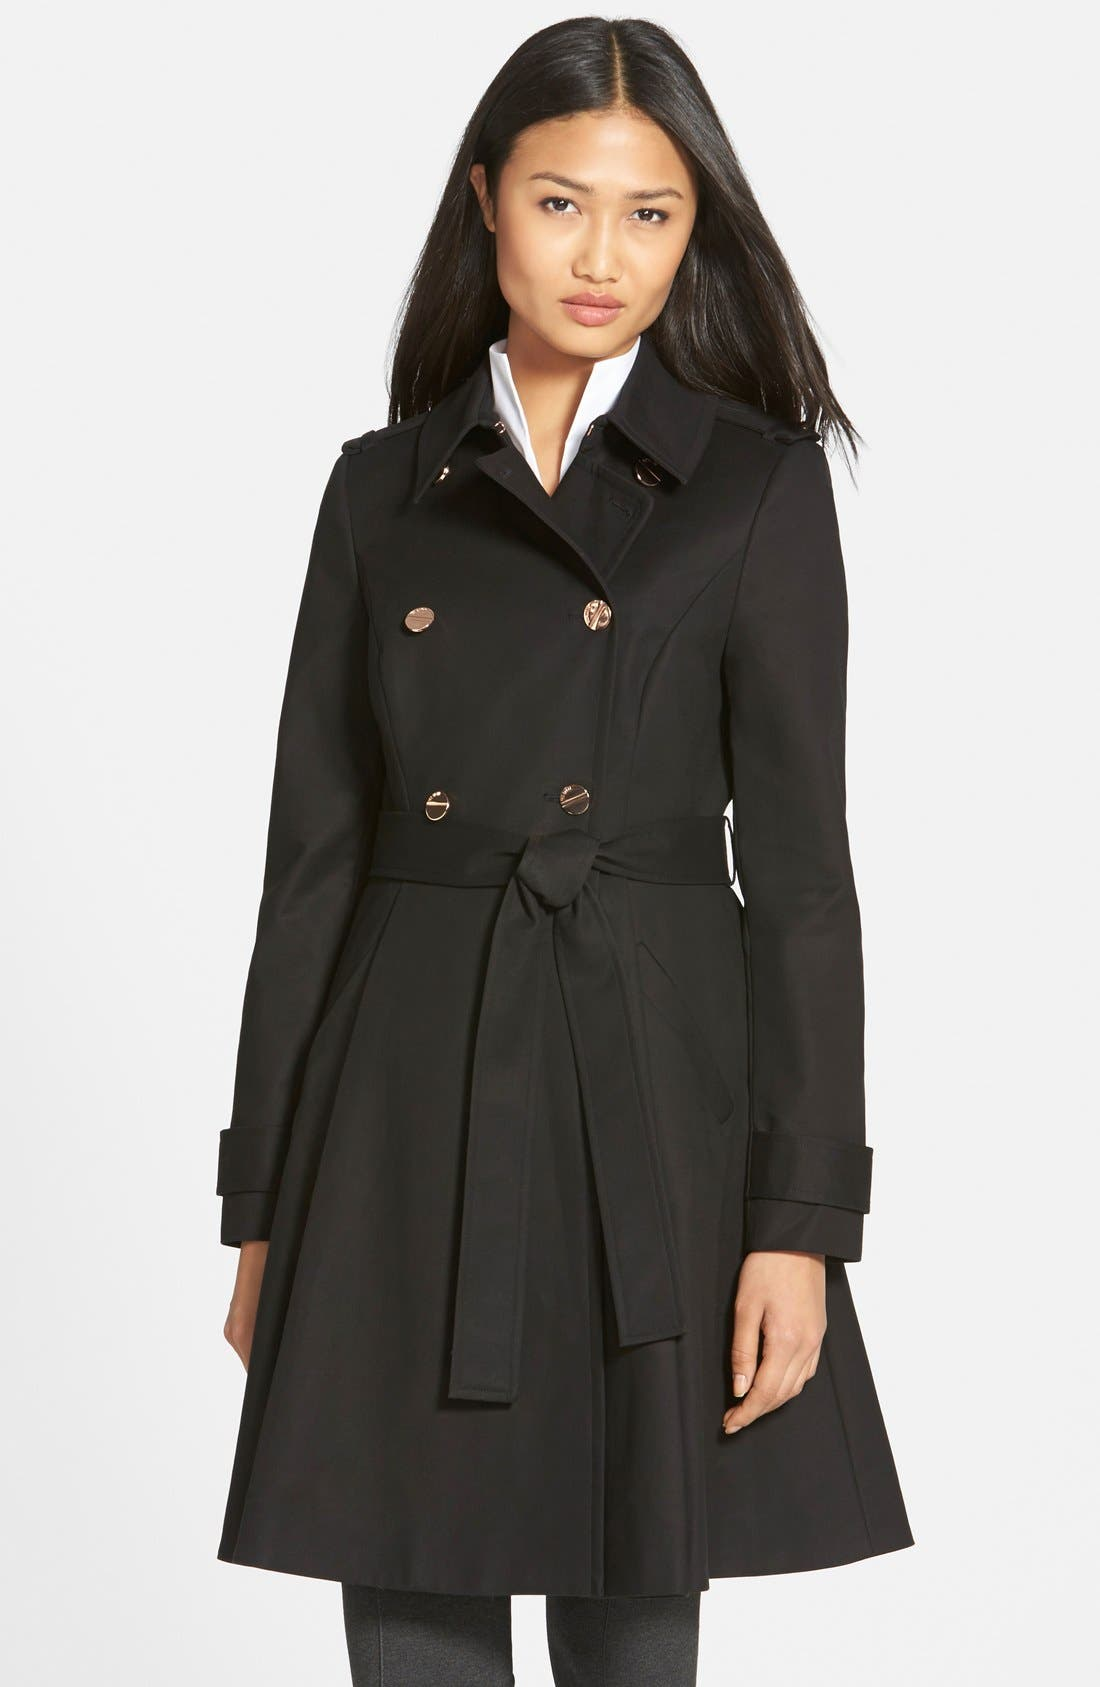 TED BAKER LONDON,                             Flared Skirt Trench Coat,                             Main thumbnail 1, color,                             001